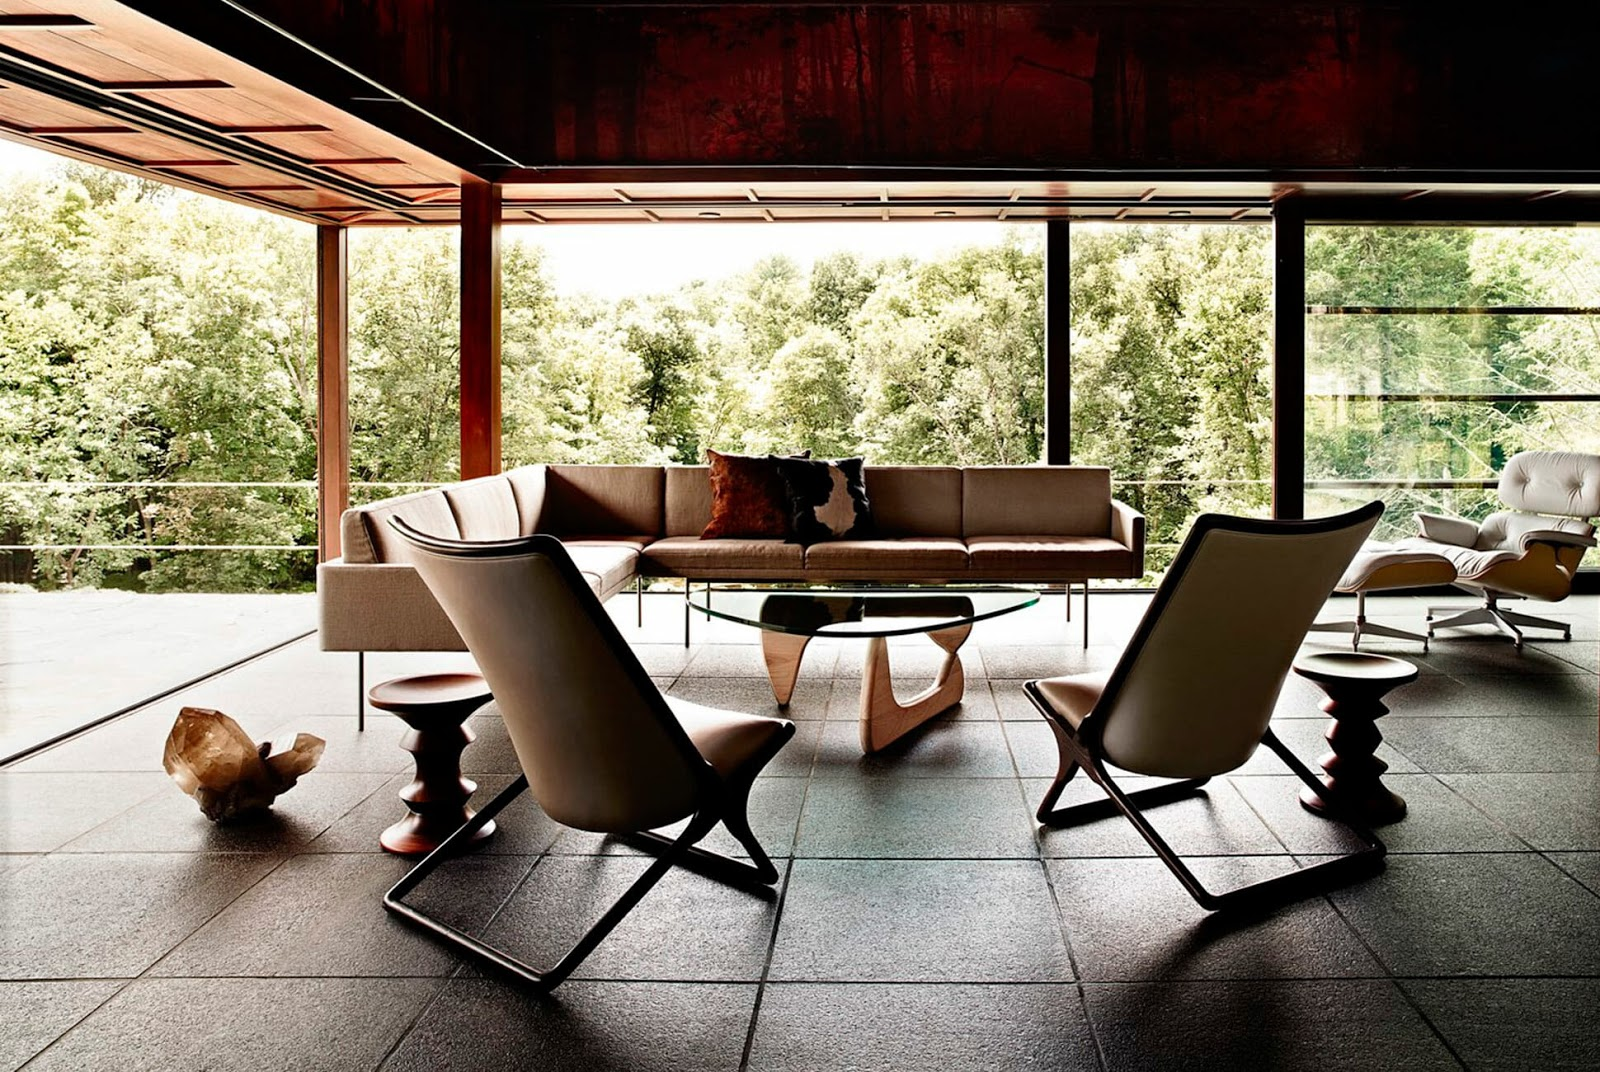 a Noguchi triangular coffee table in the middle of the room